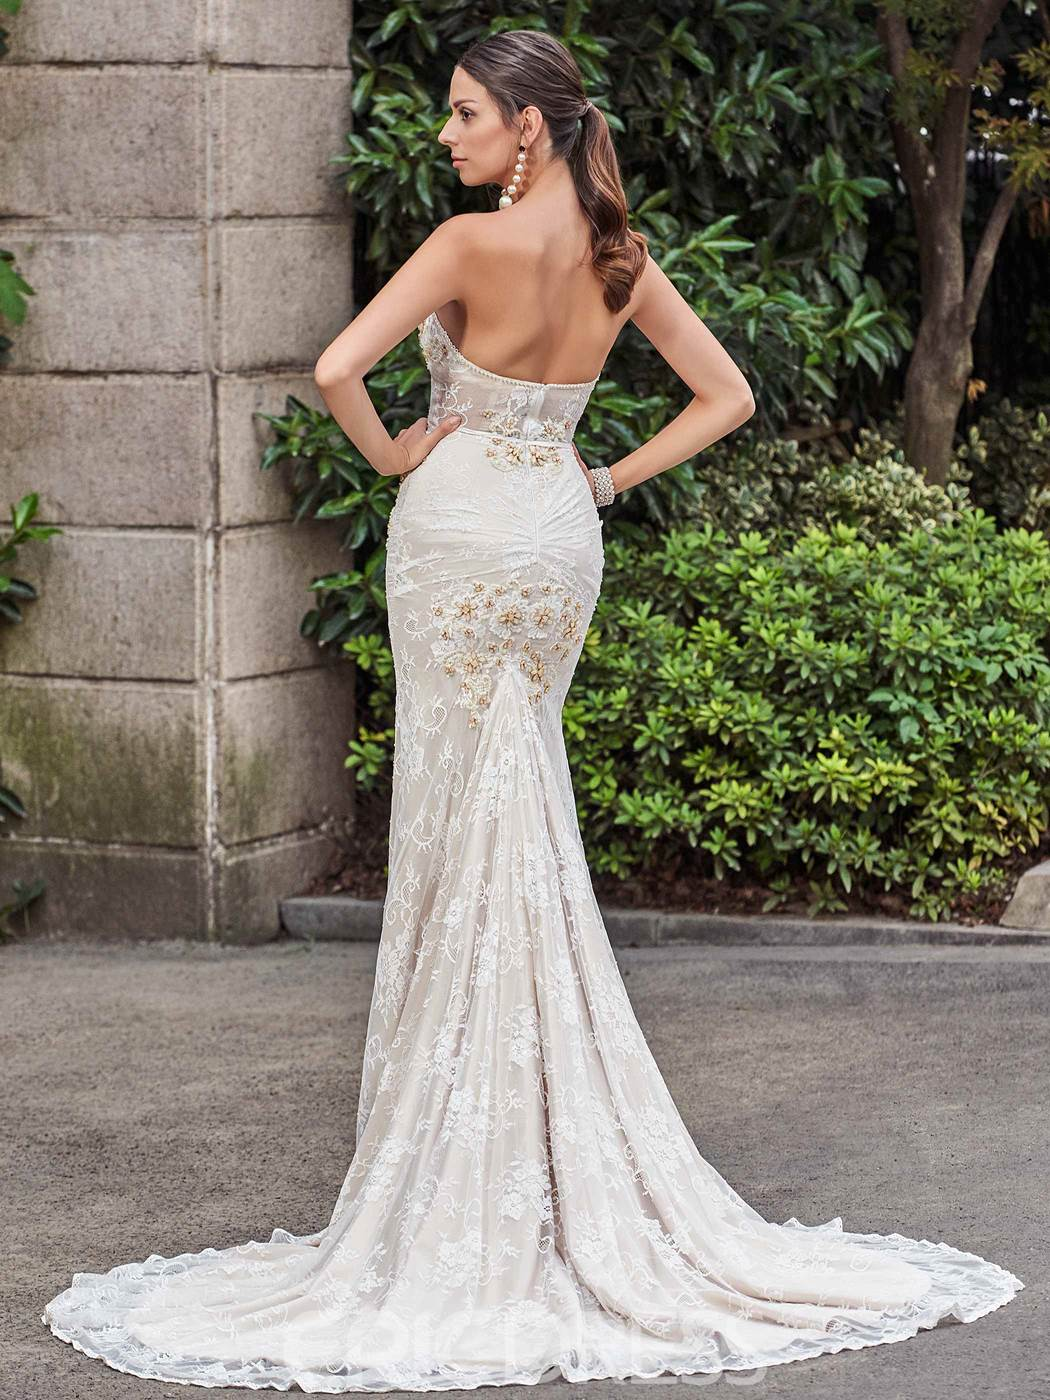 Ericdress High Quality Sweetheart Beaded Lace Mermaid Wedding Dress